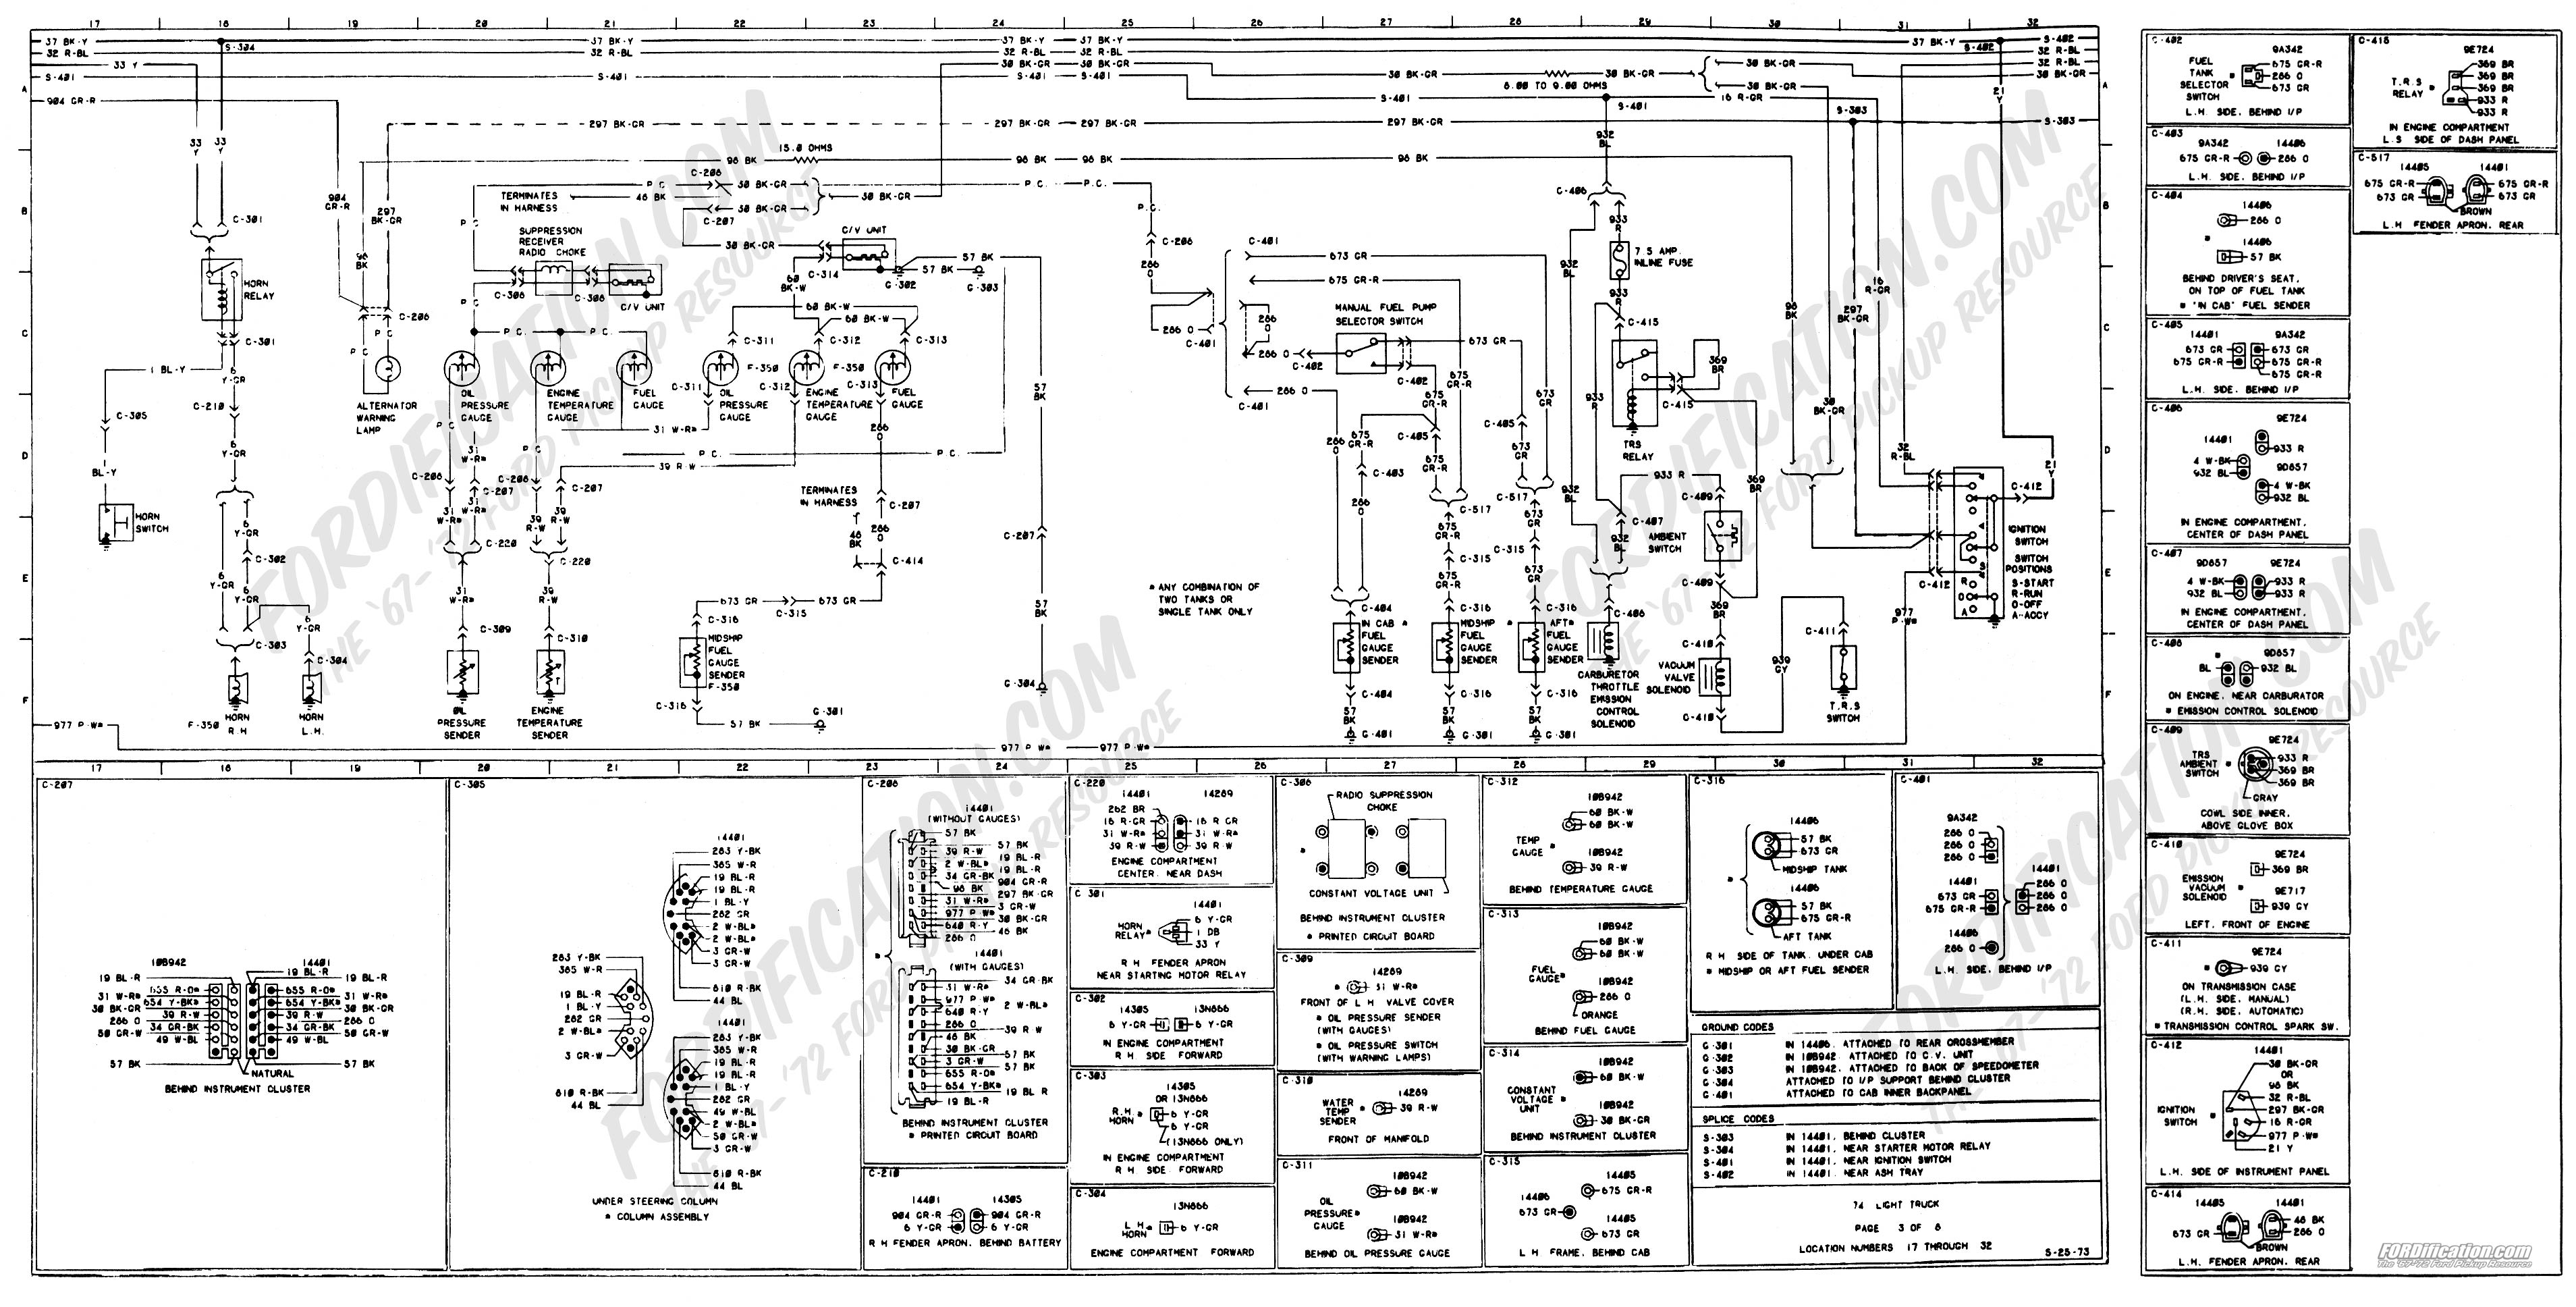 wiring_74master_3of8 1973 1979 ford truck wiring diagrams & schematics fordification net ford truck wiring schematics at alyssarenee.co